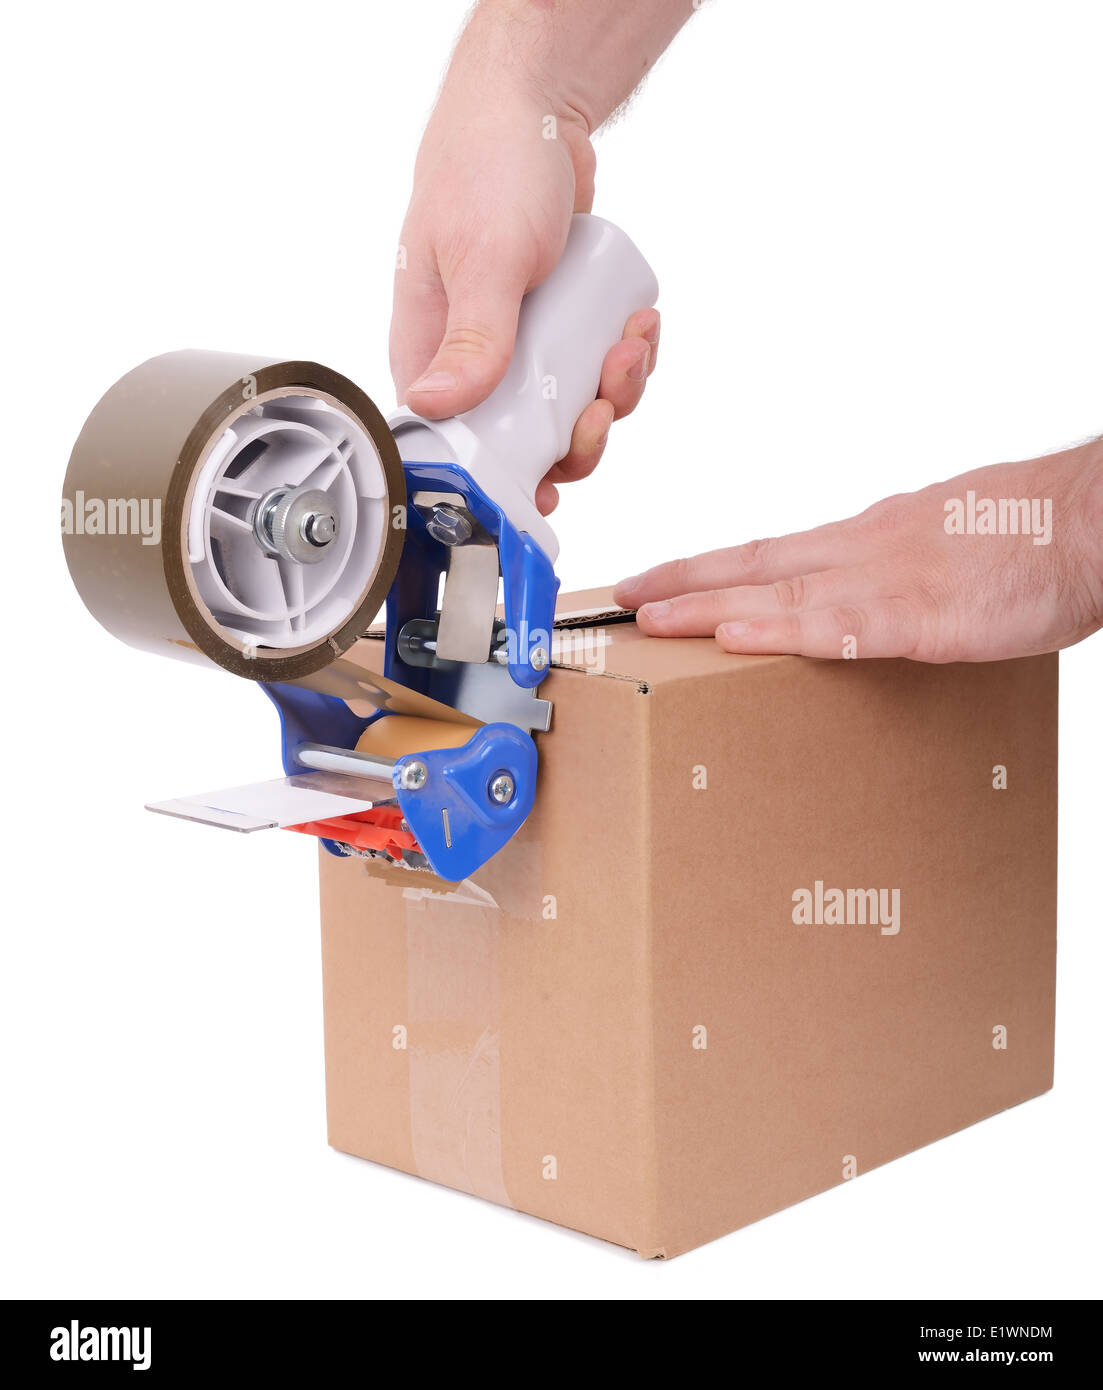 box being tapped up ready for transport isolated on a white background - Stock Image